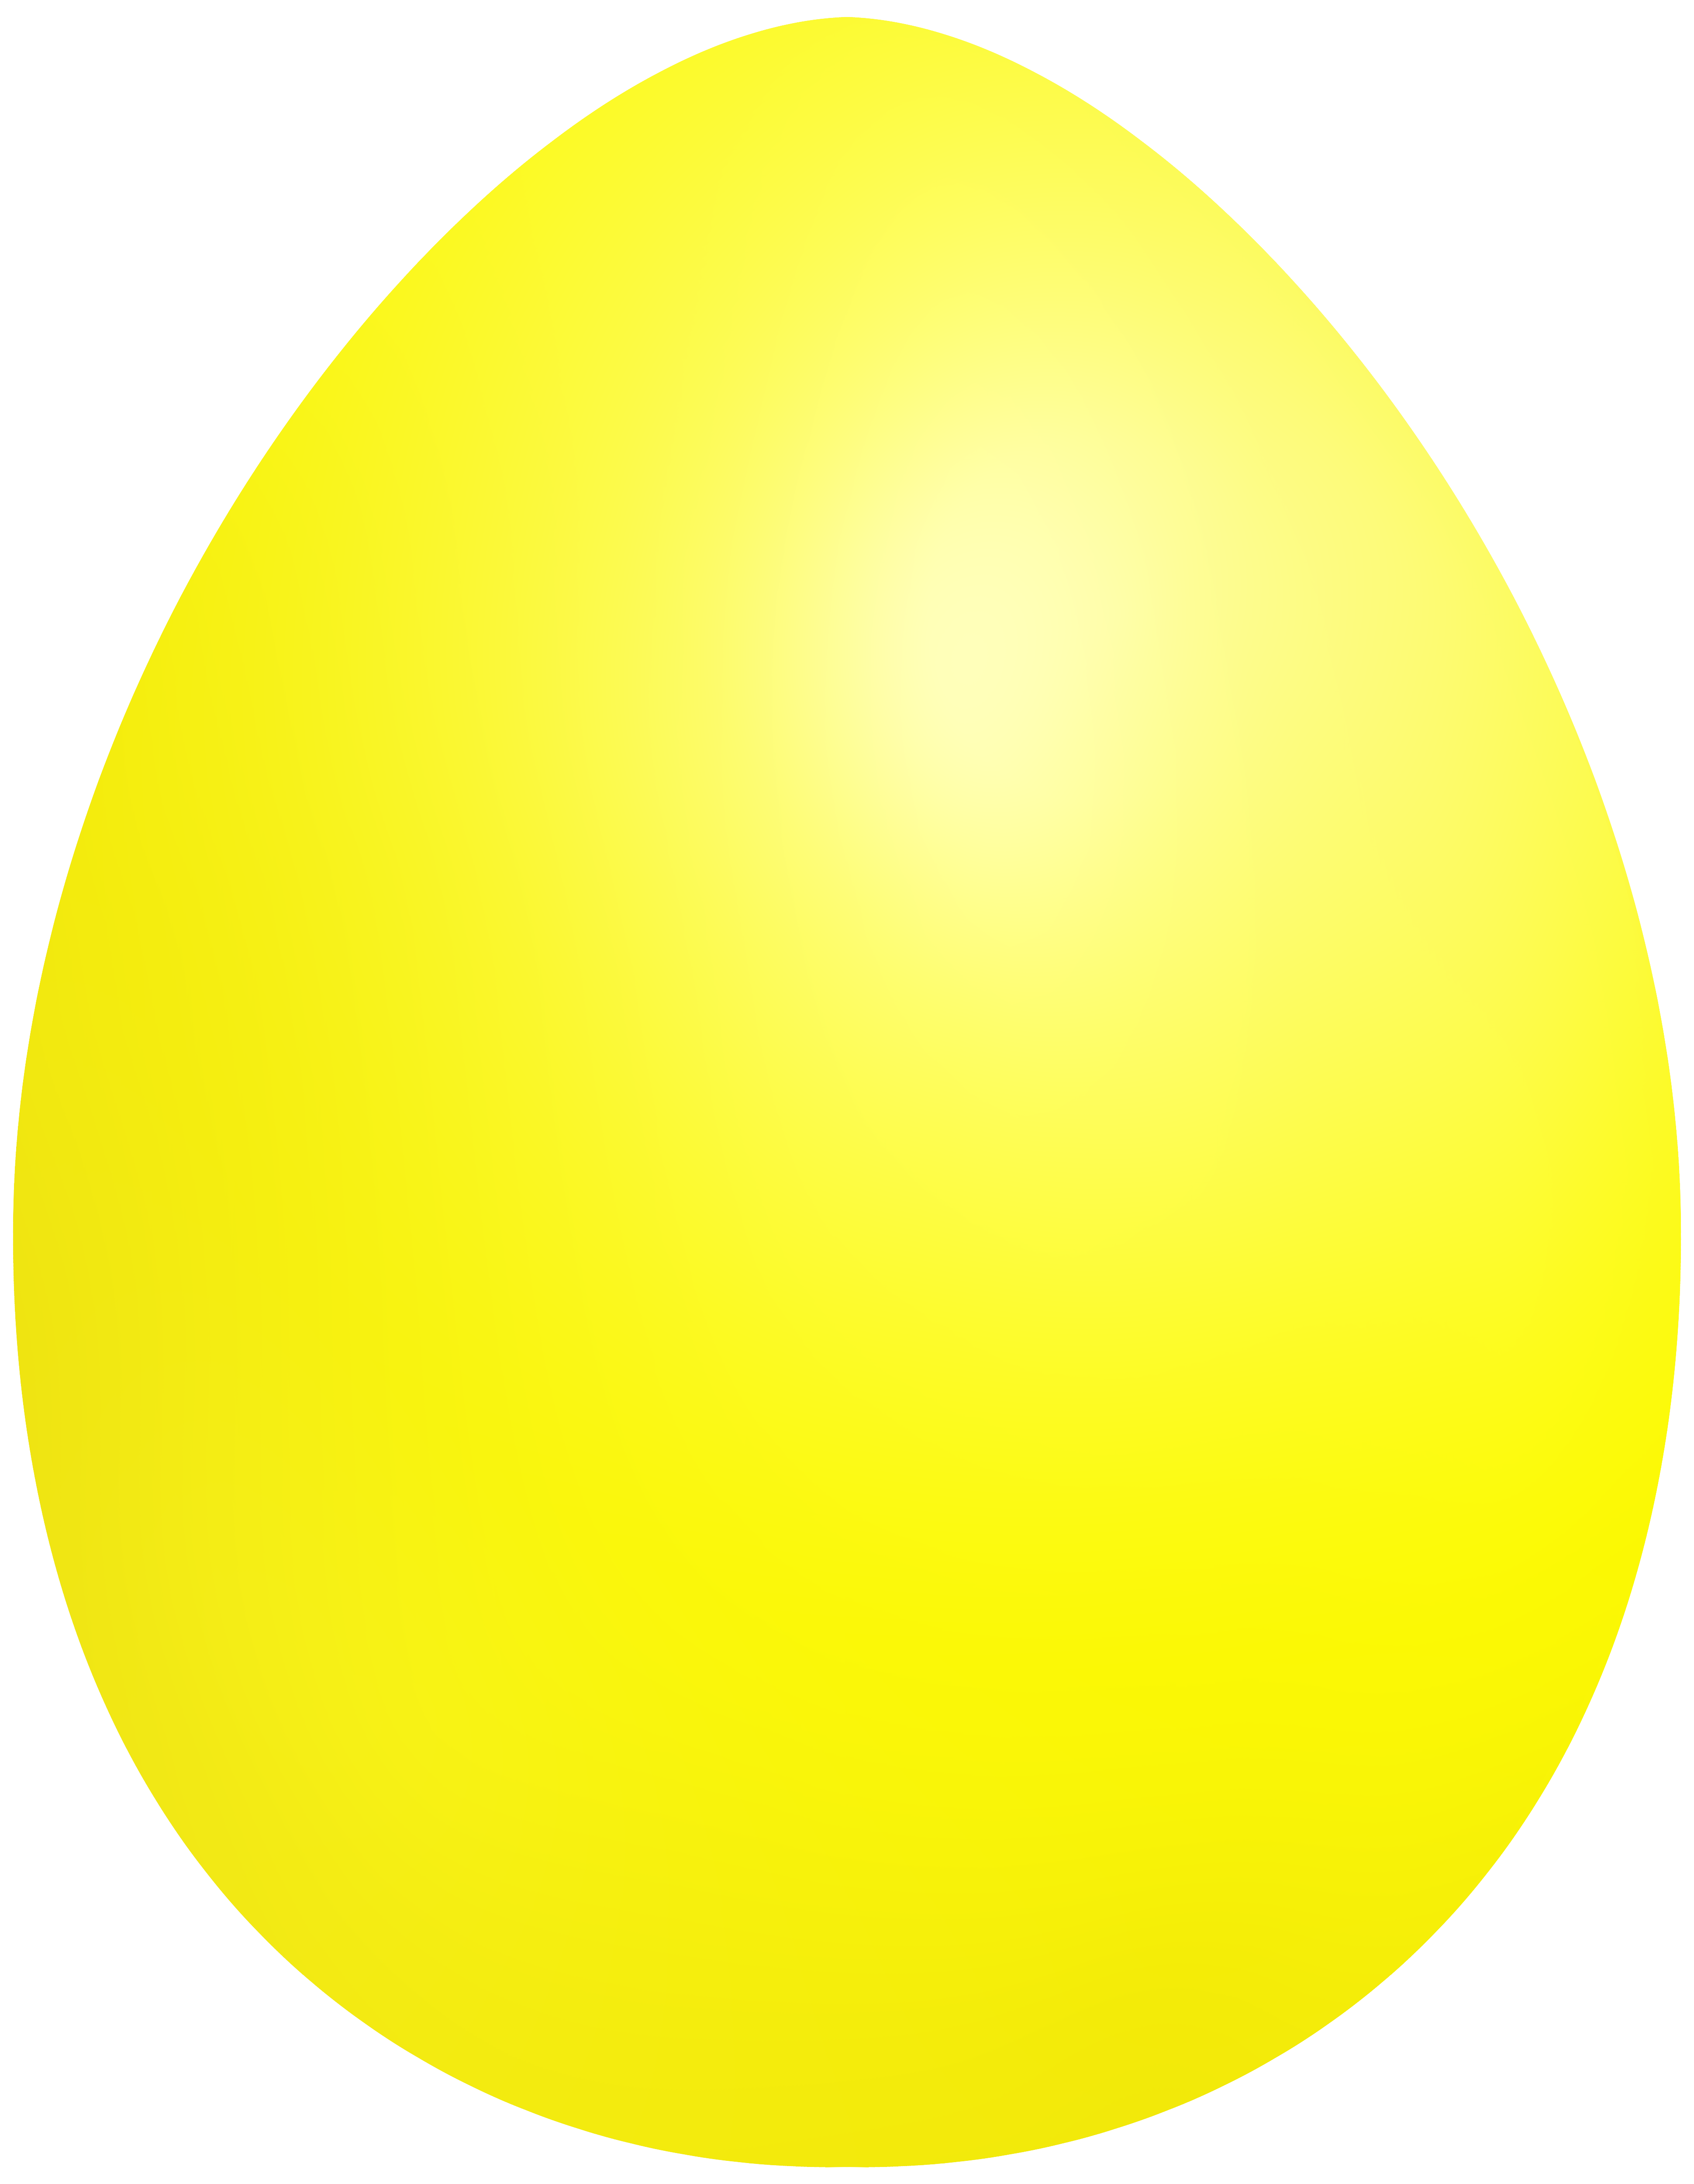 Yellow easter egg clipart png banner freeuse download Yellow Easter Egg PNG Clip Art - Best WEB Clipart banner freeuse download